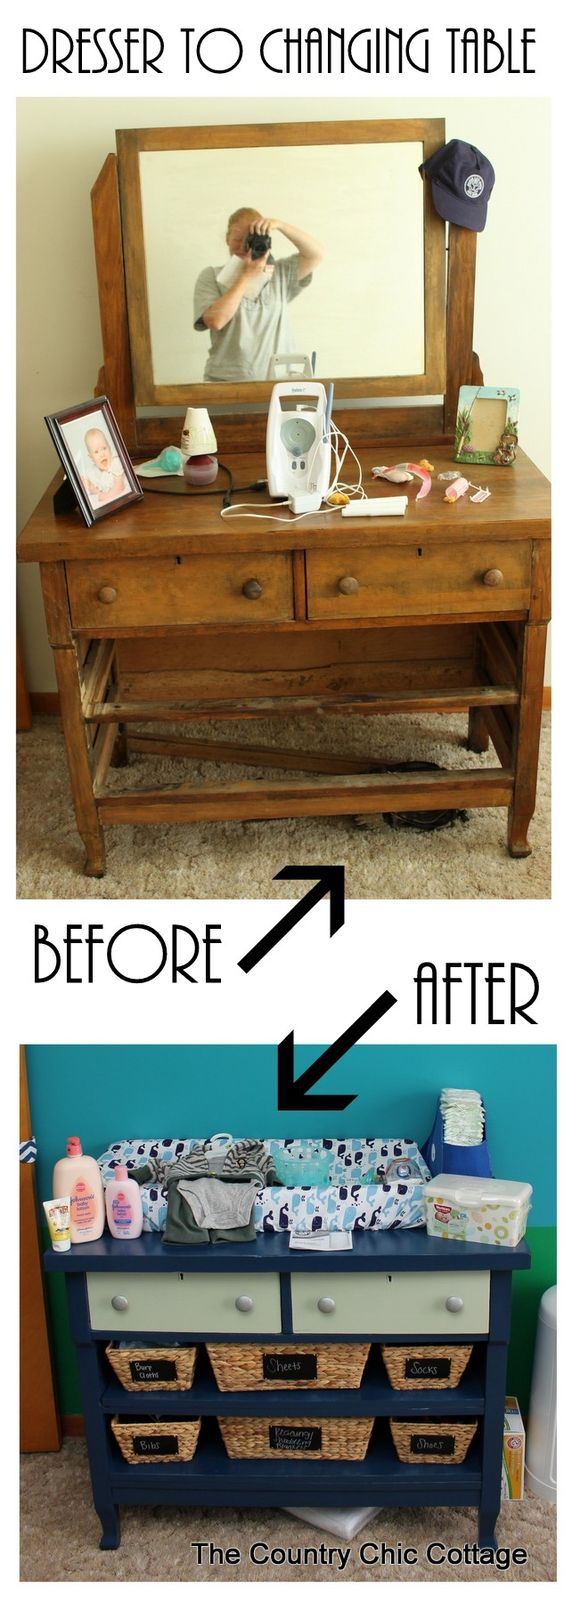 Turn A Dresser Into A Changing Table And More Ideas In